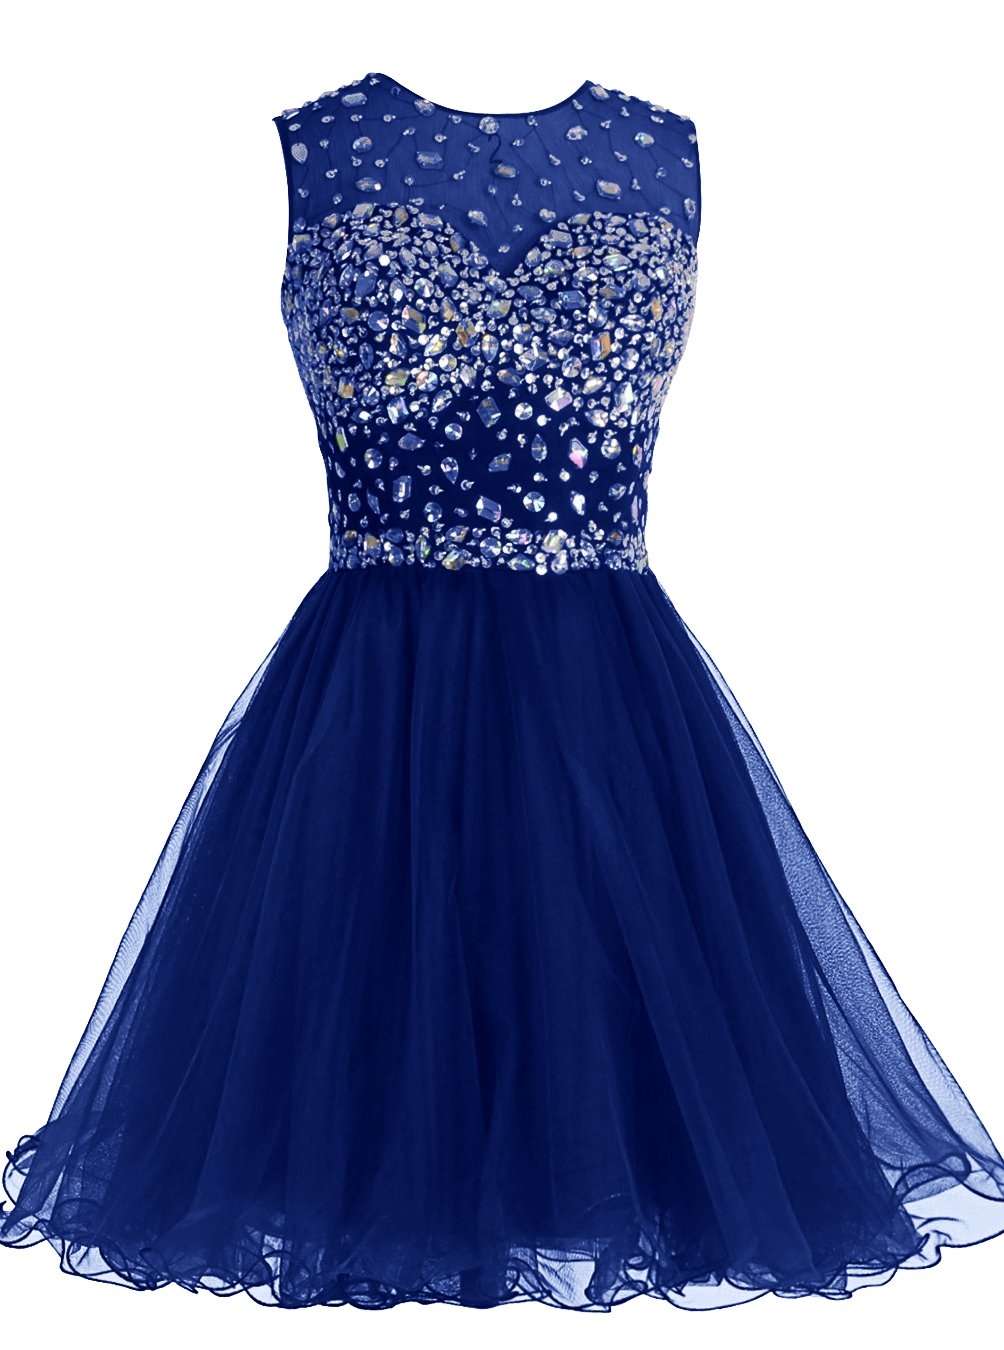 ALAGIRLS Short Homecoming Dress Open Back Tulle Prom Dress with Beads RoyalBlue18Plus